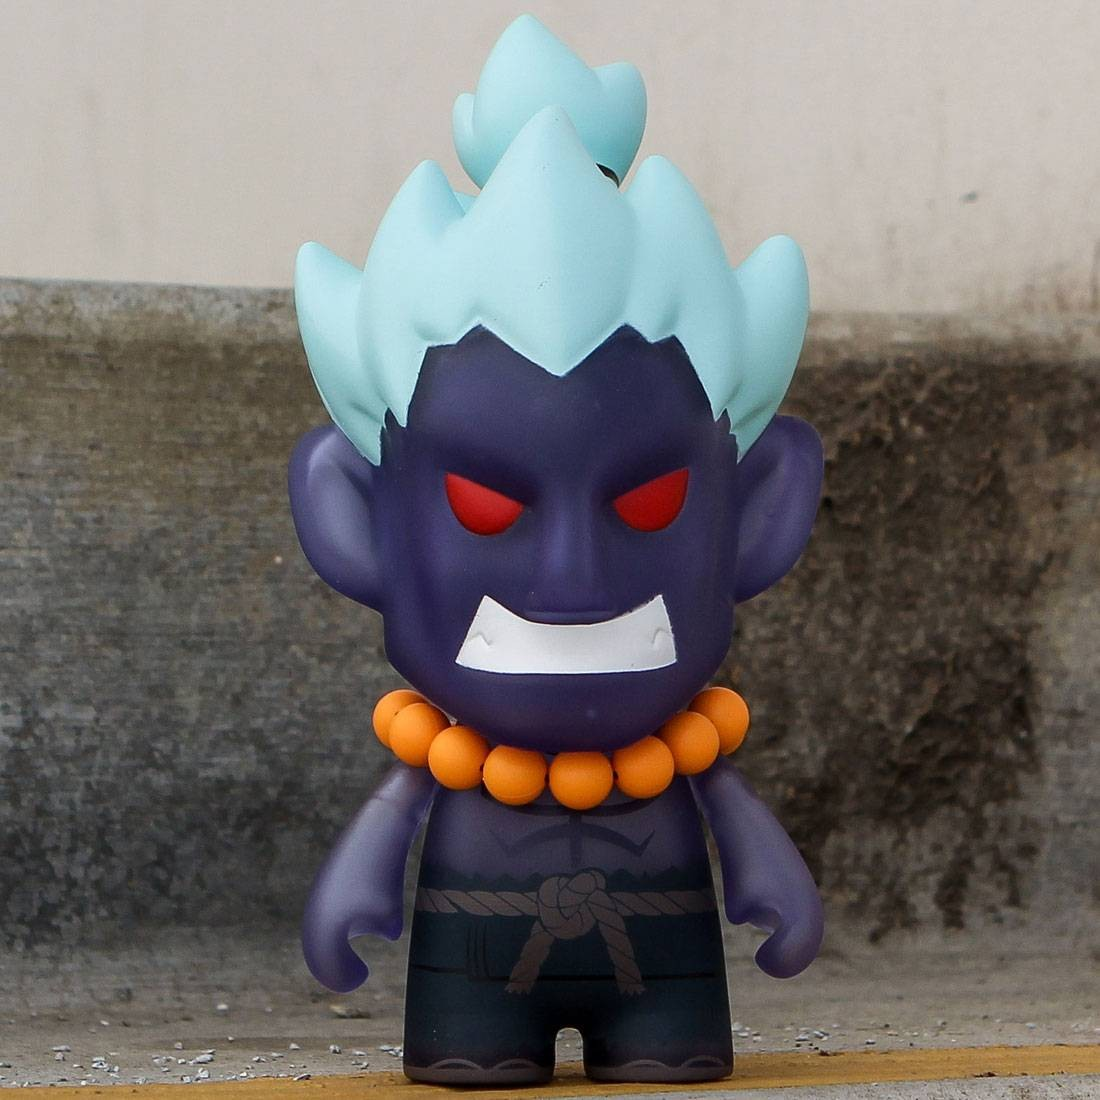 BAIT x Street Fighter x Kidrobot Oni Akuma 7 Inch Medium Figure - 2016 SDCC Exclusive (blue)